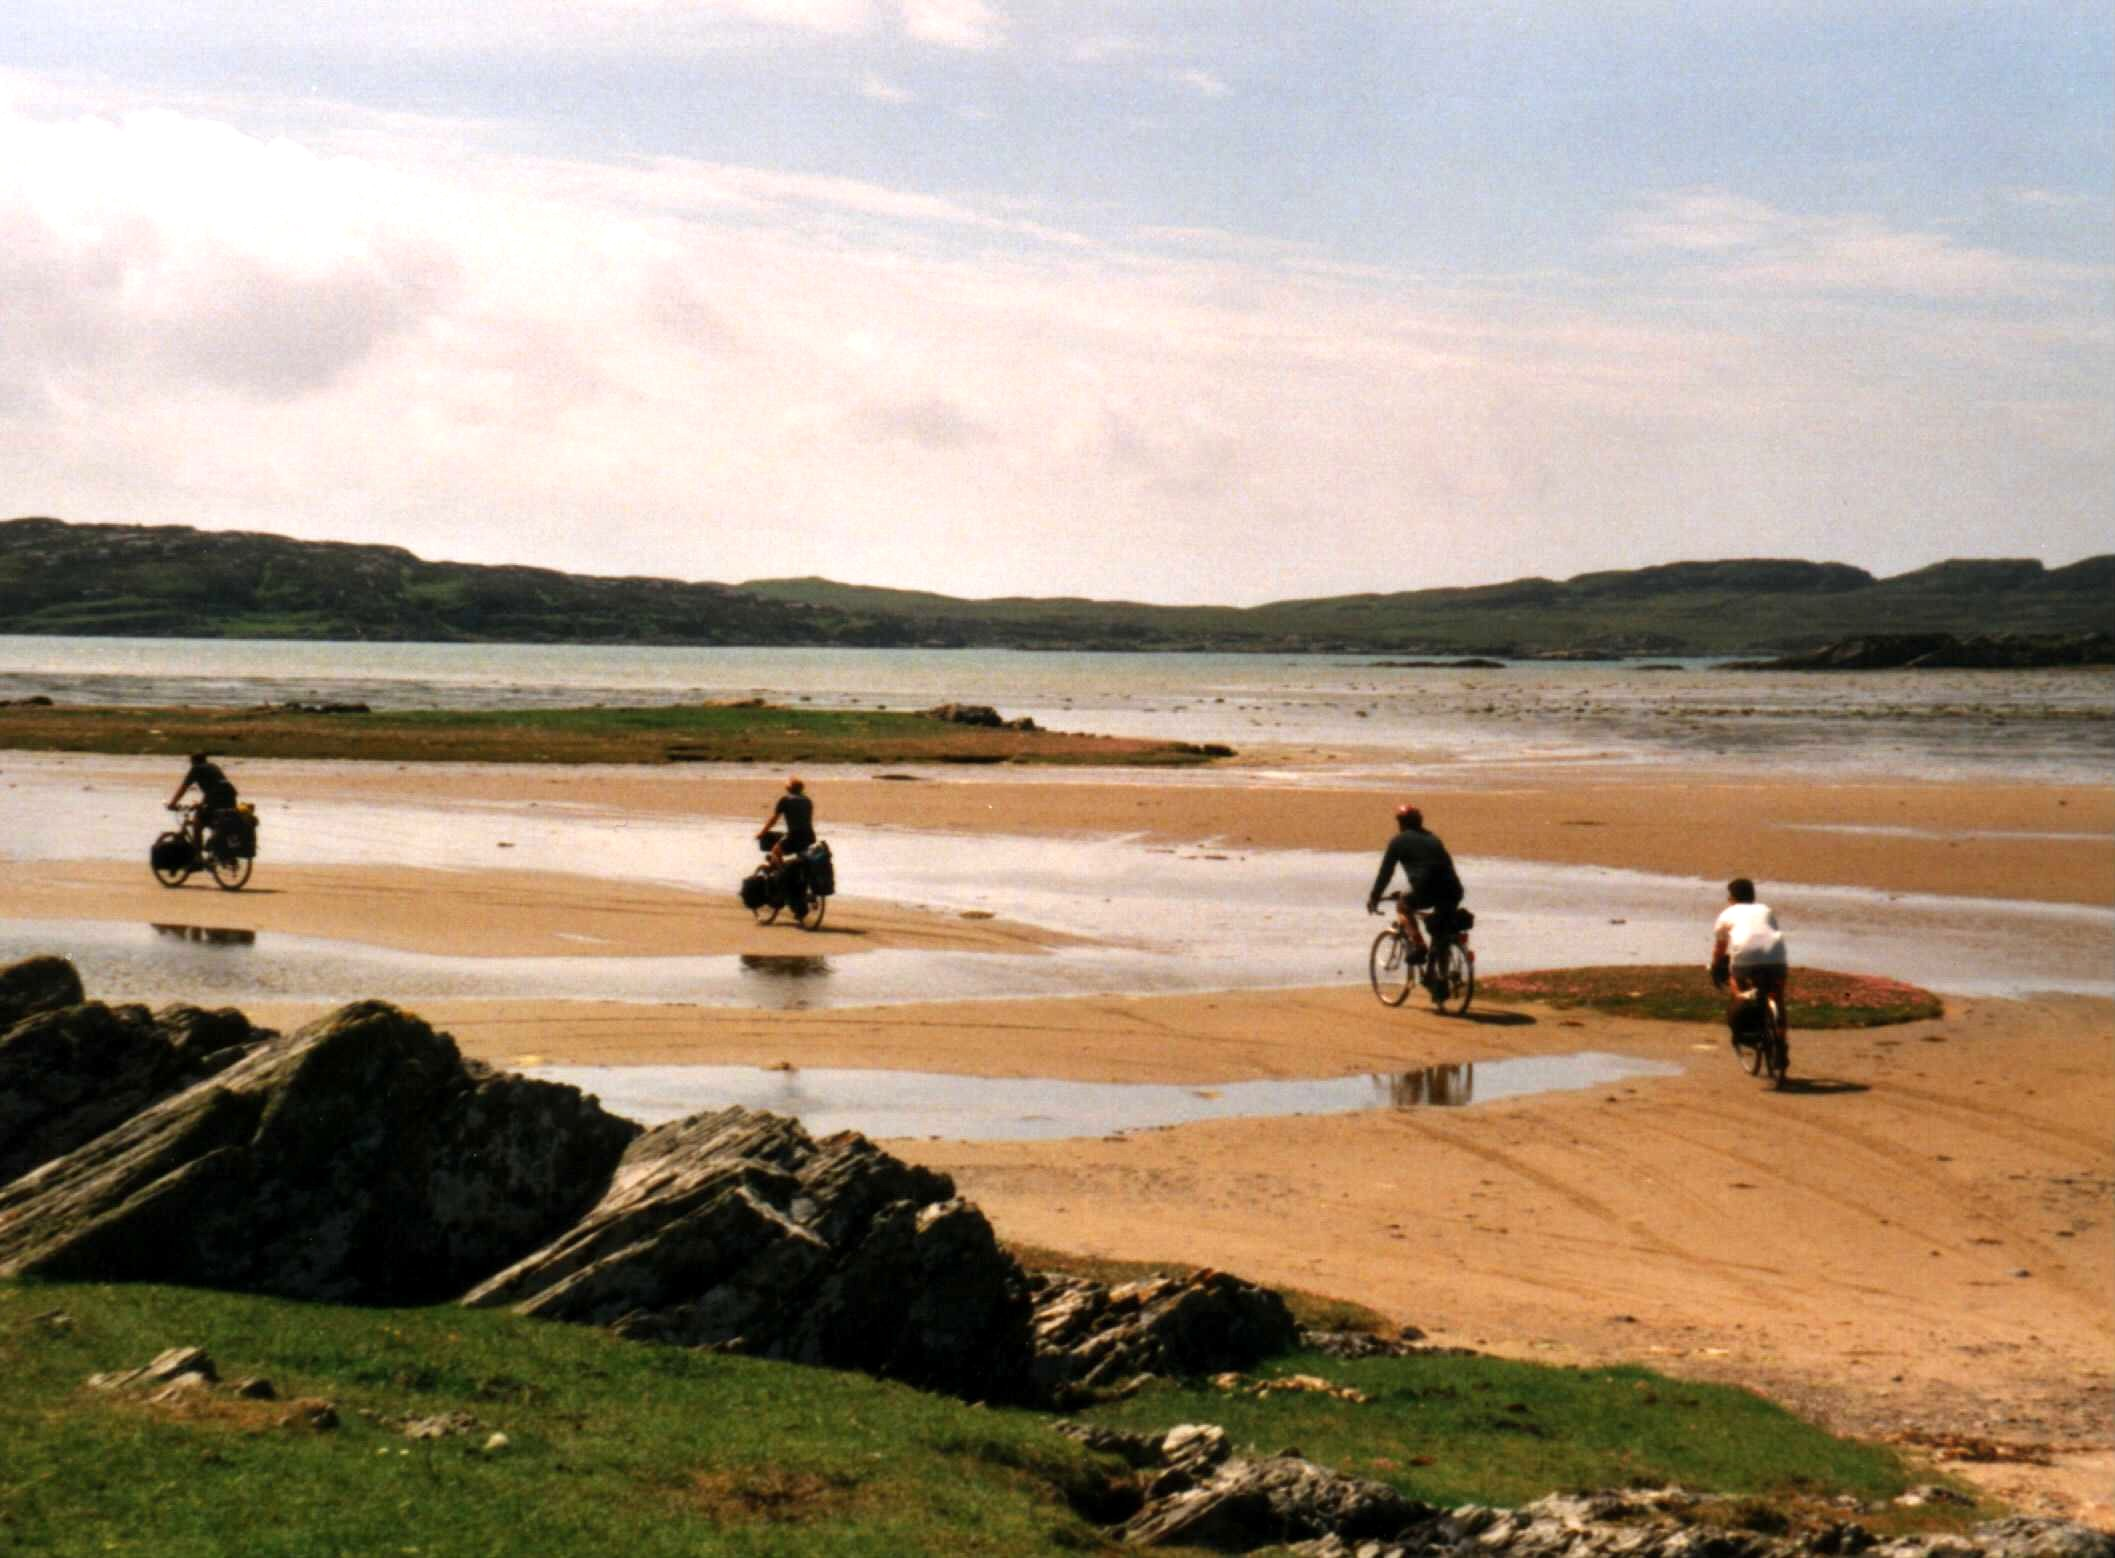 The 'road' to Oronsay